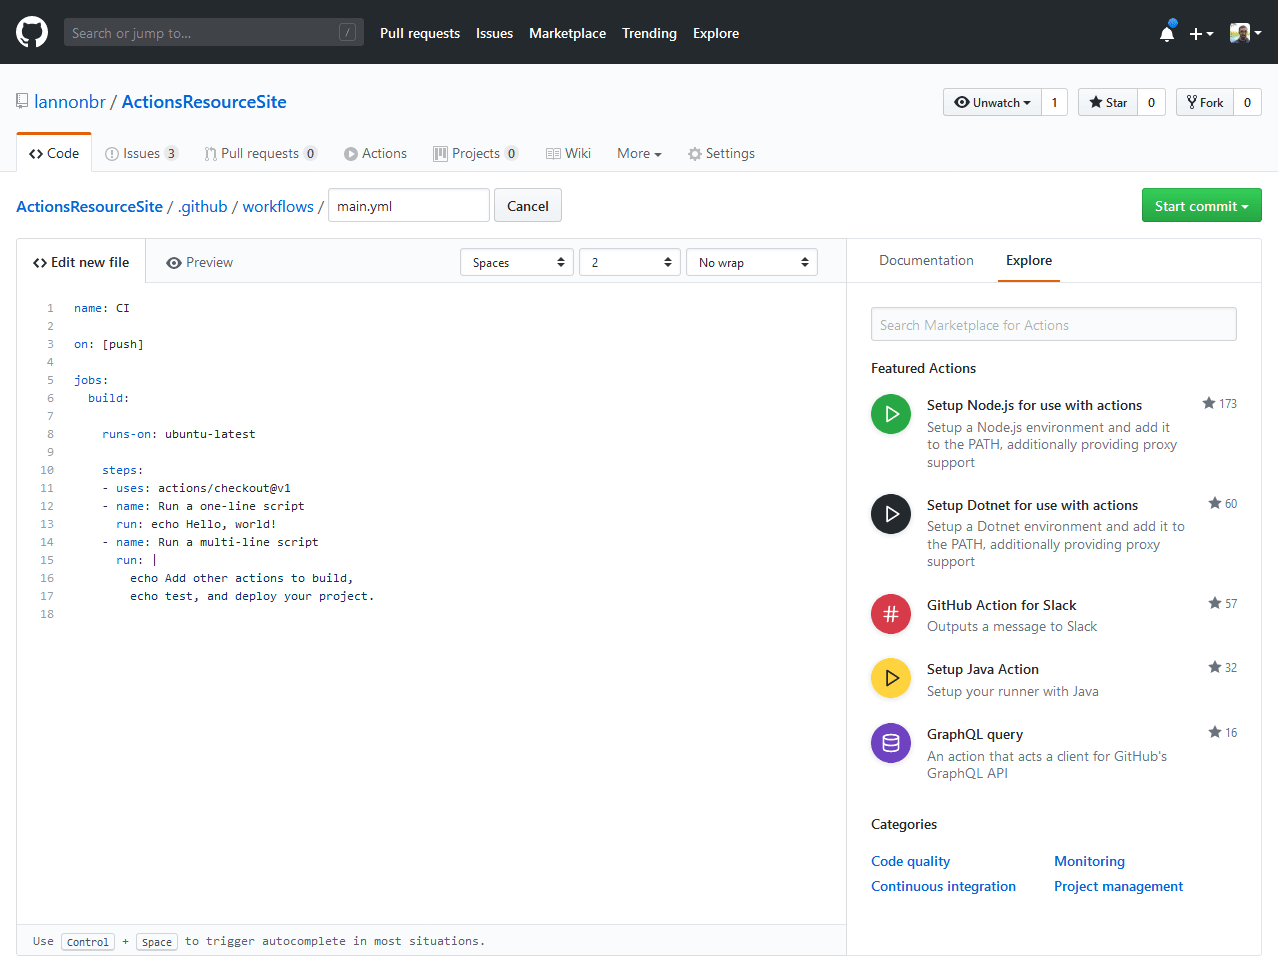 Actions in the workflow editor